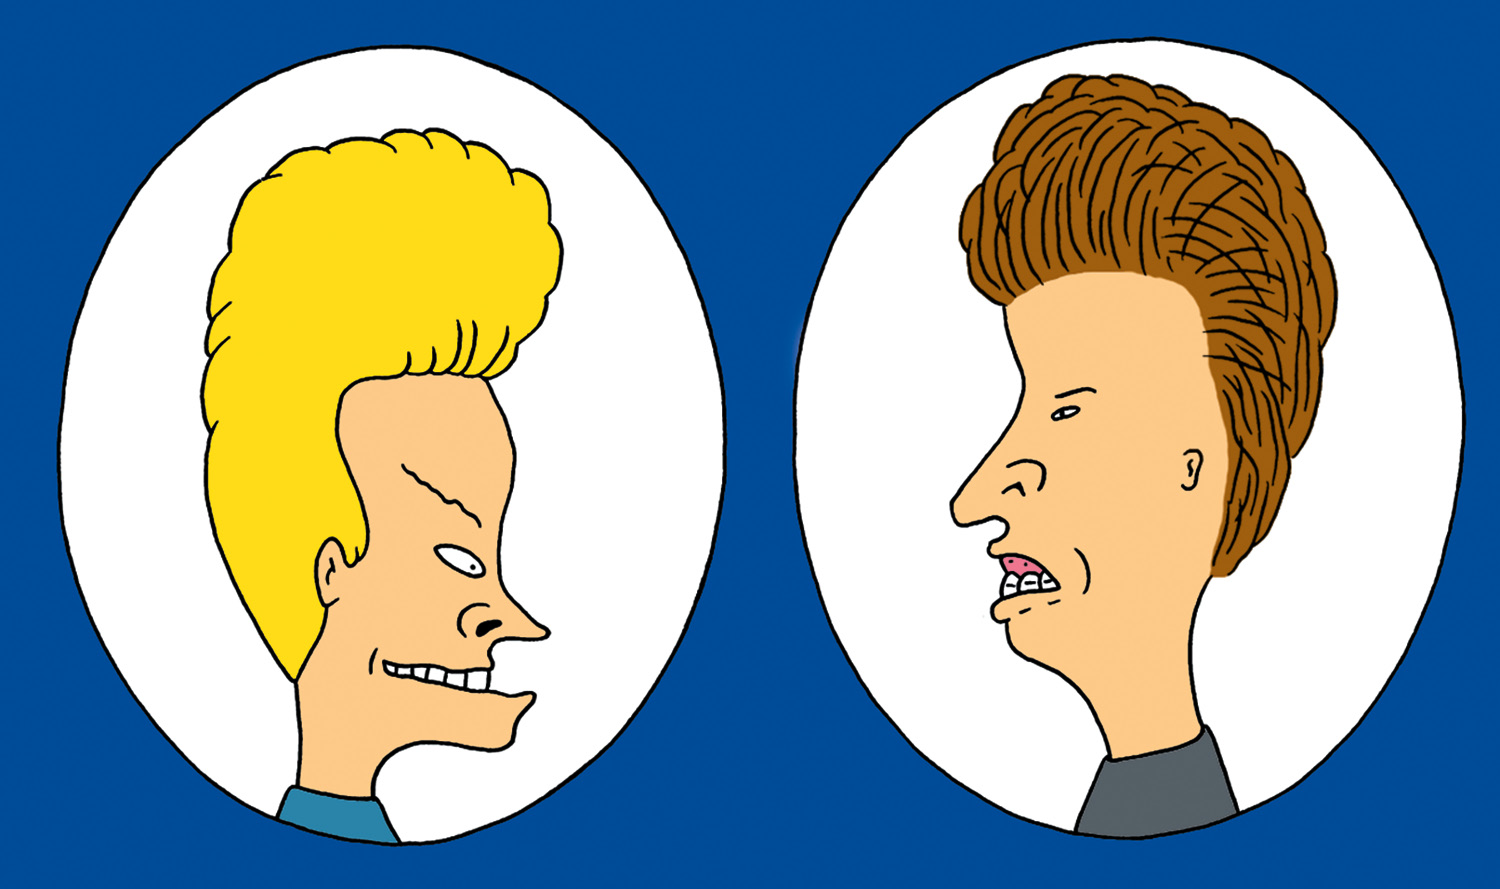 Beavis And Butt-Head Backgrounds, Compatible - PC, Mobile, Gadgets| 1500x889 px